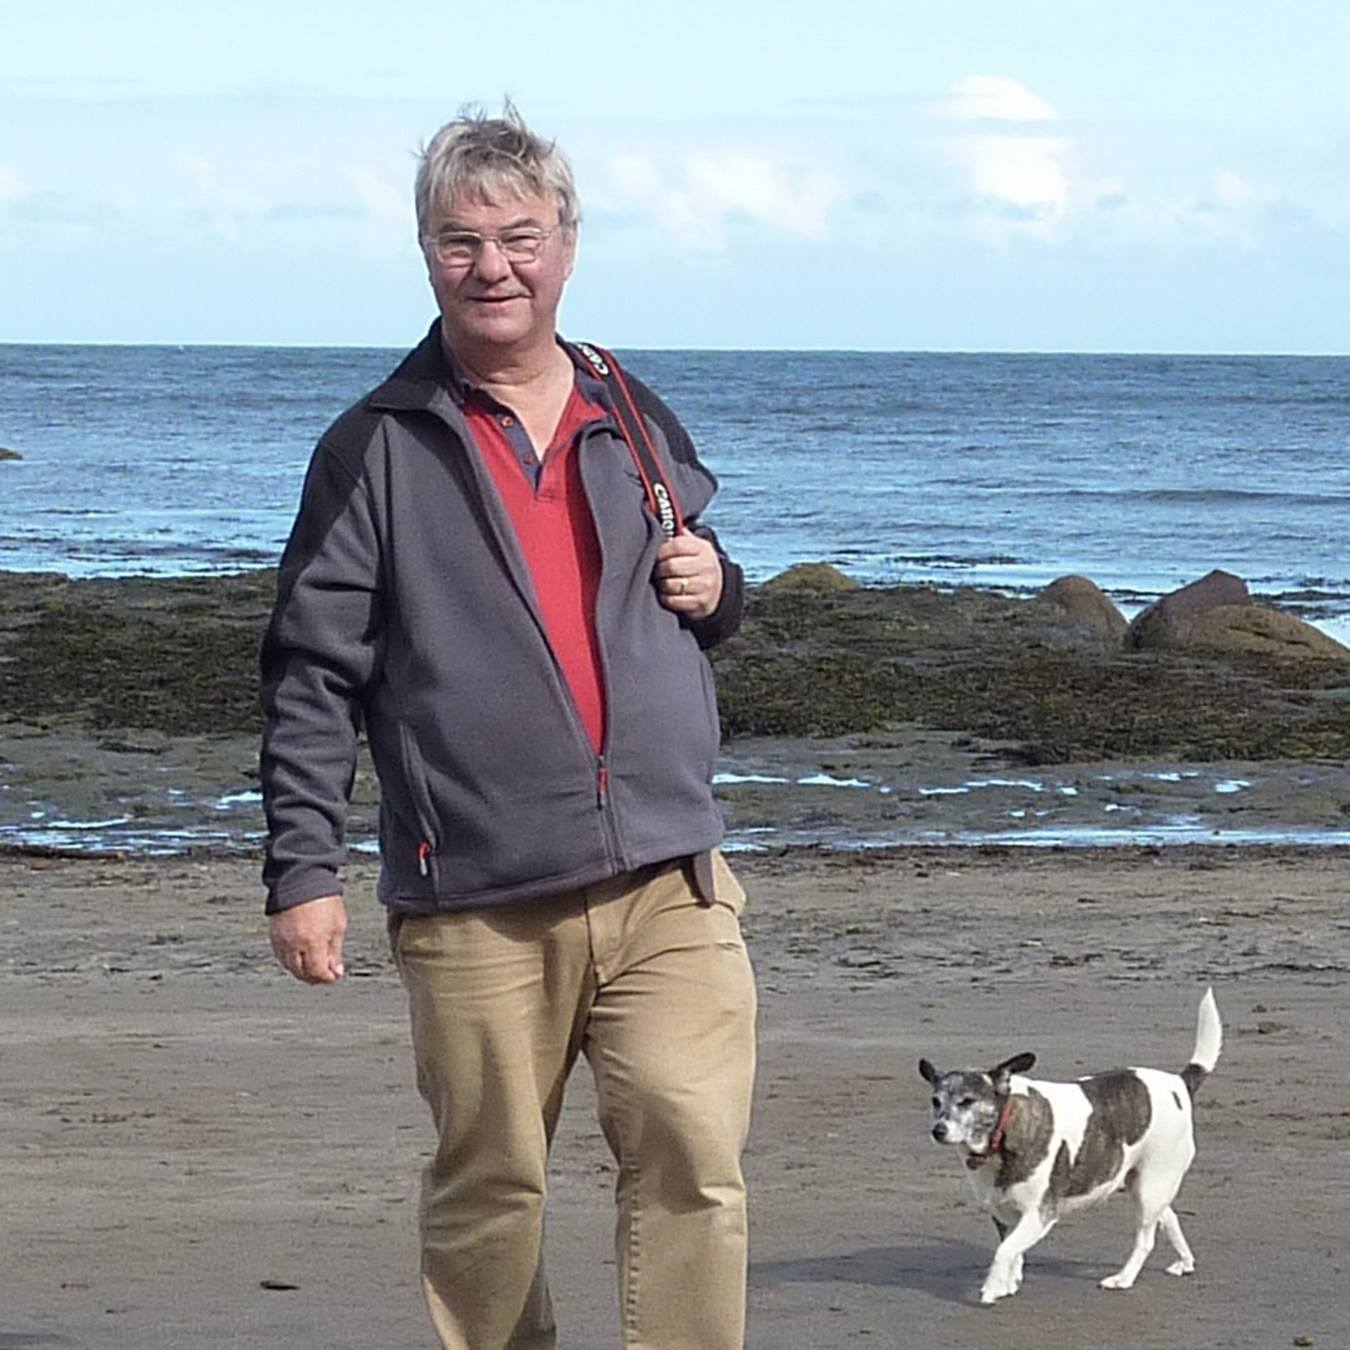 Jim Bruce with his dog